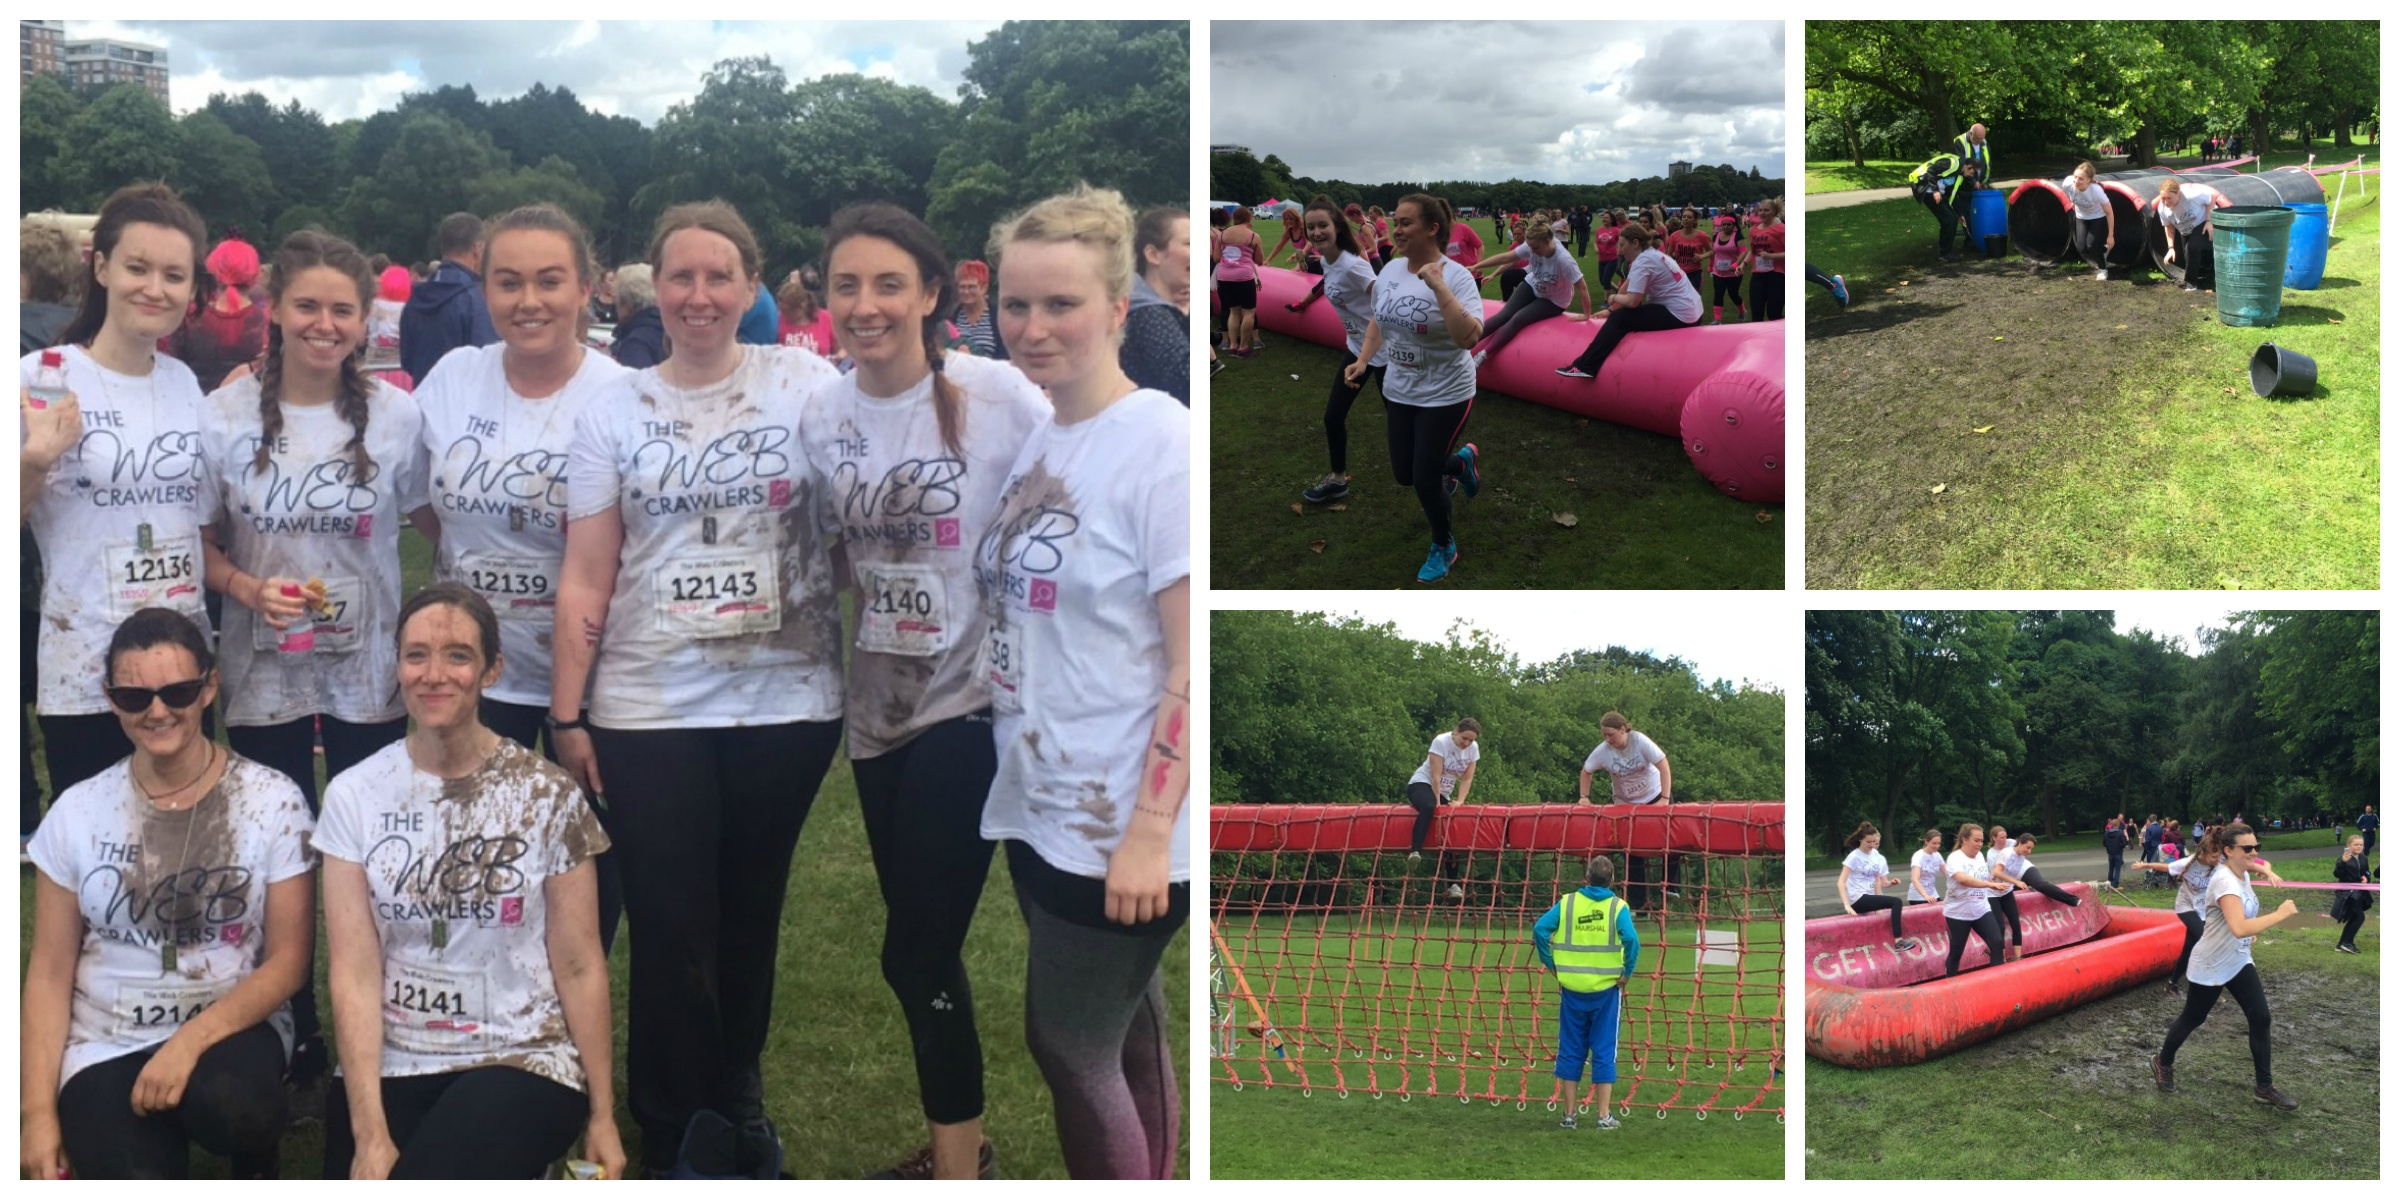 The Hit Search Web Crawlers complete Race for Life Pretty Muddy event in Liverpool